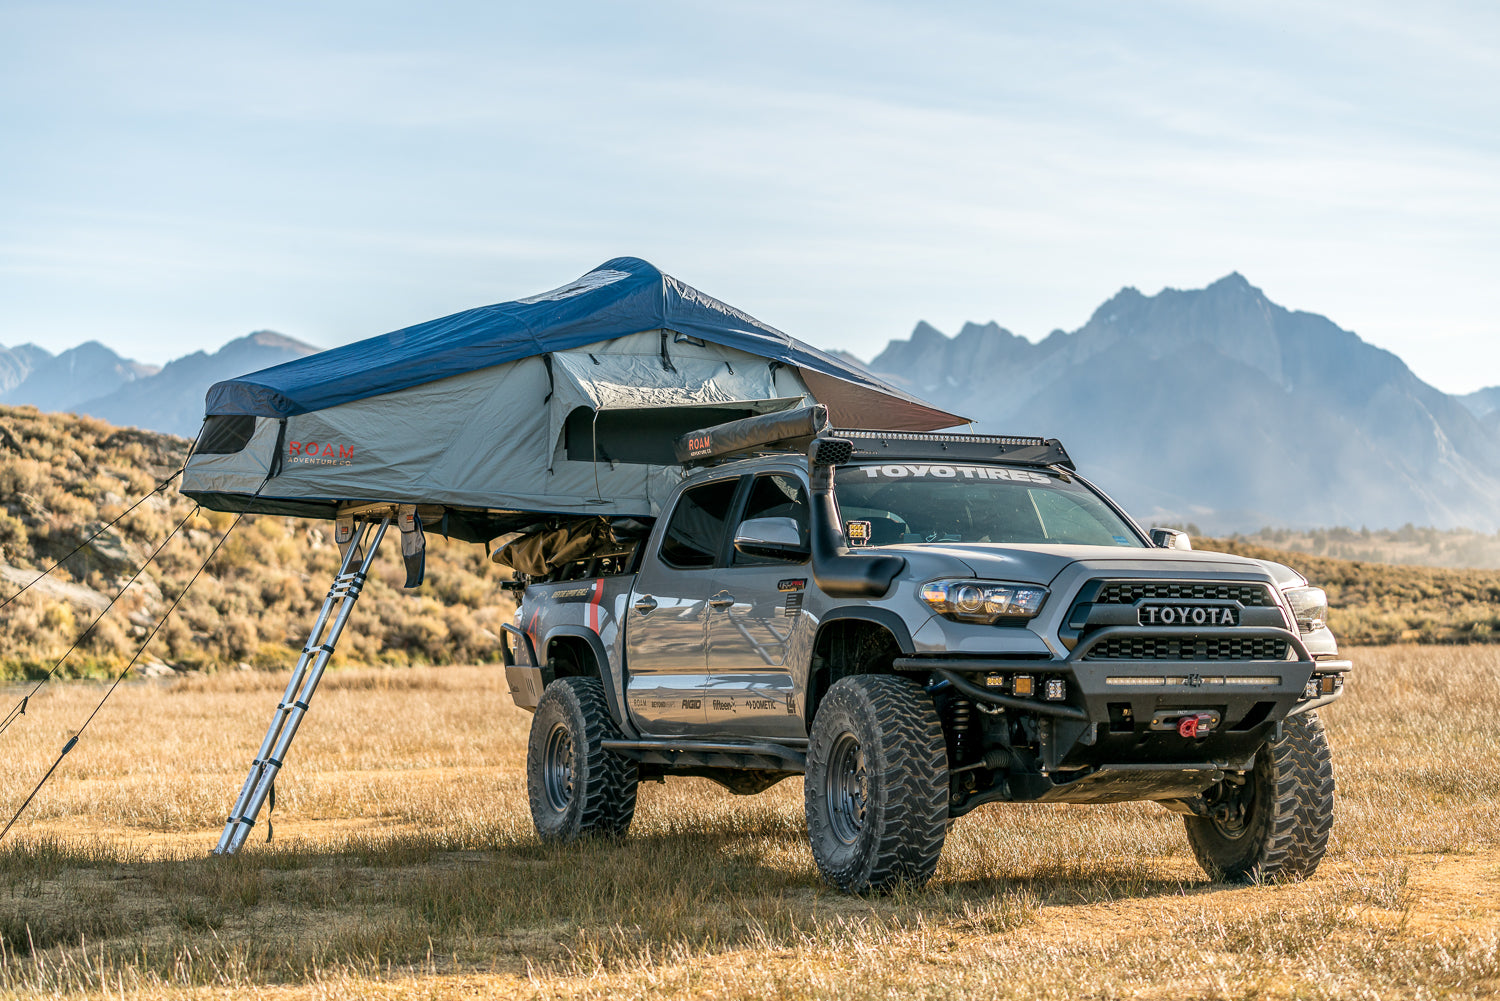 The Vagabond Rooftop Tent